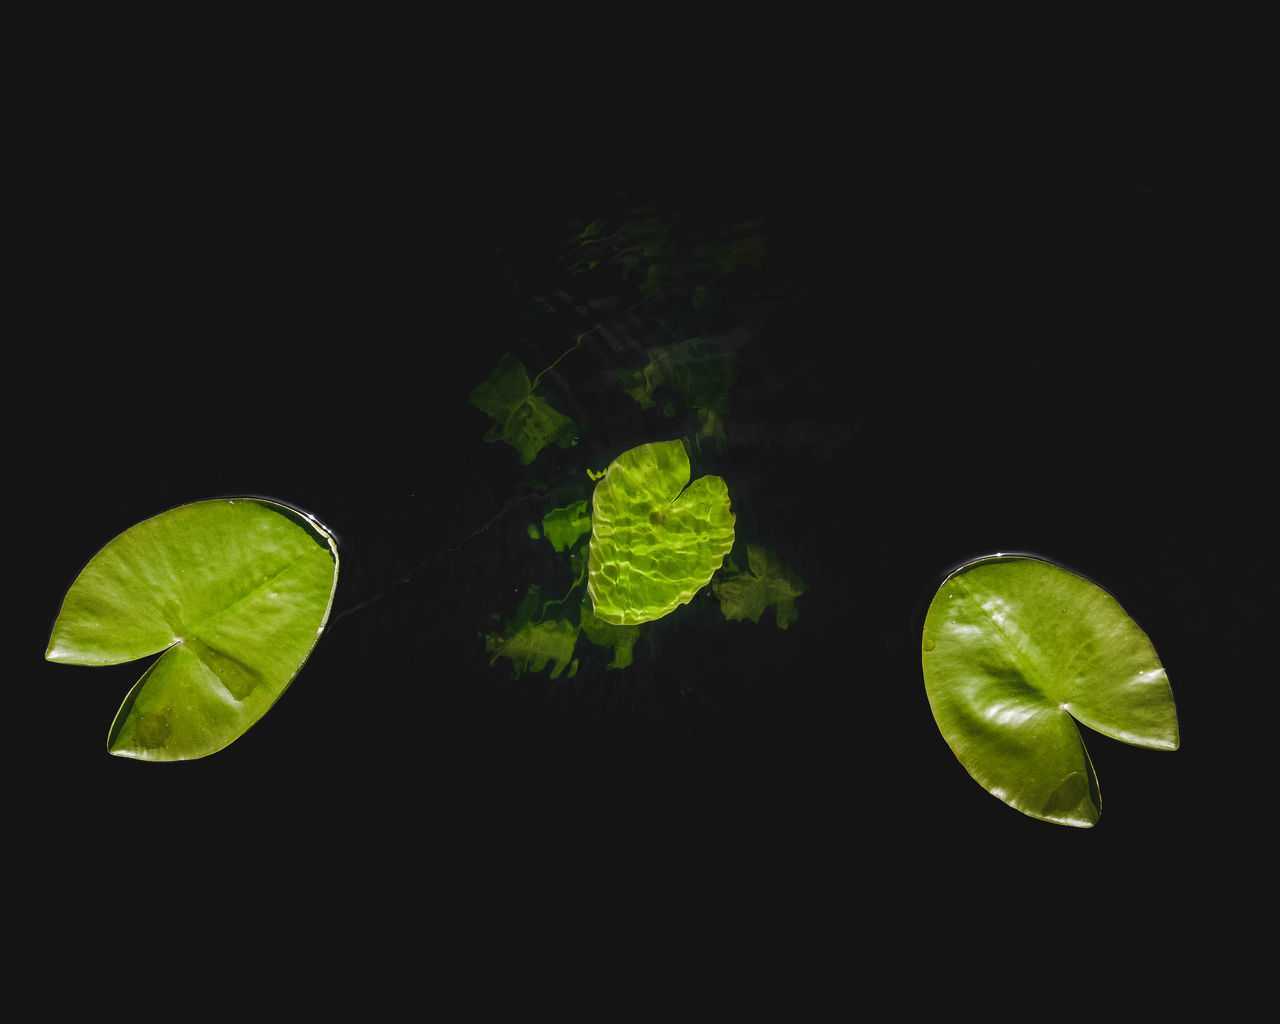 HIGH ANGLE VIEW OF GREEN LEAVES AND BLACK BACKGROUND